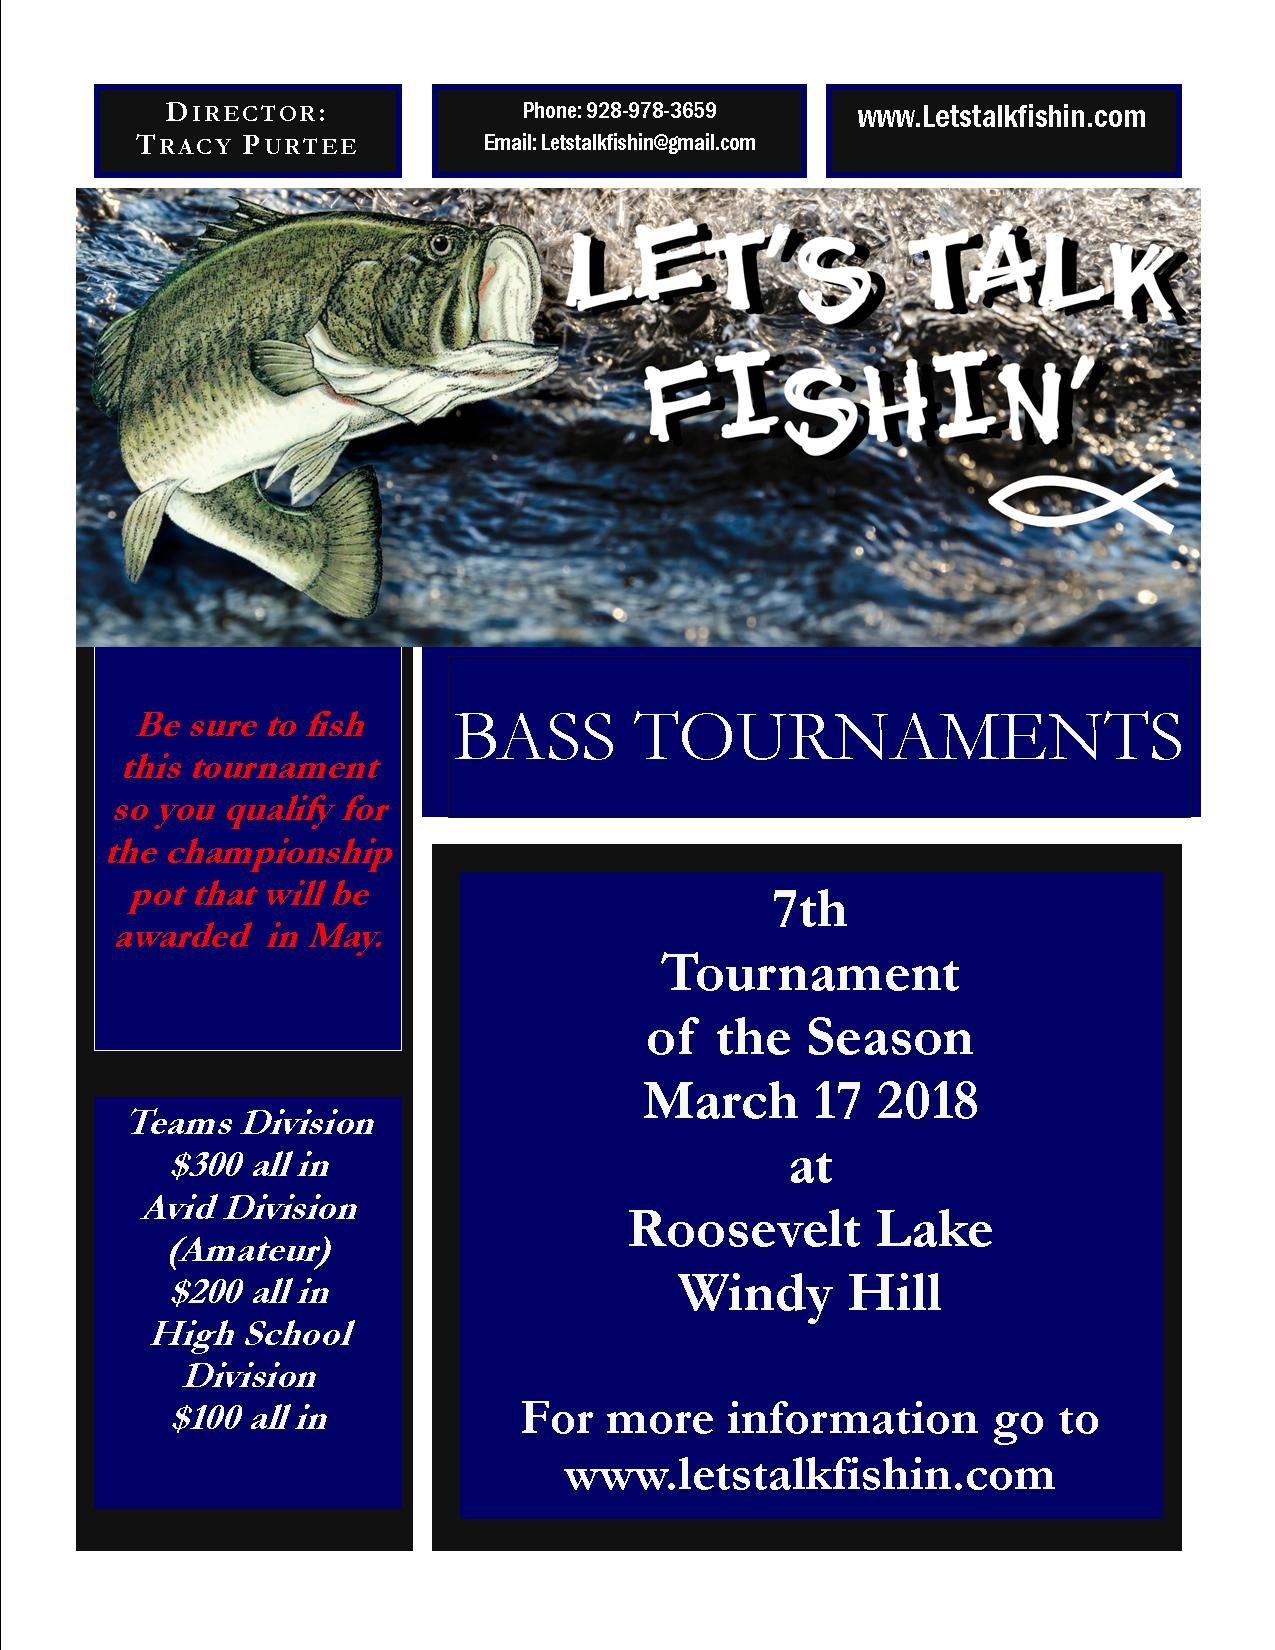 Click image for larger version  Name:7th Tournament.jpg Views:1938 Size:283.6 KB ID:96826